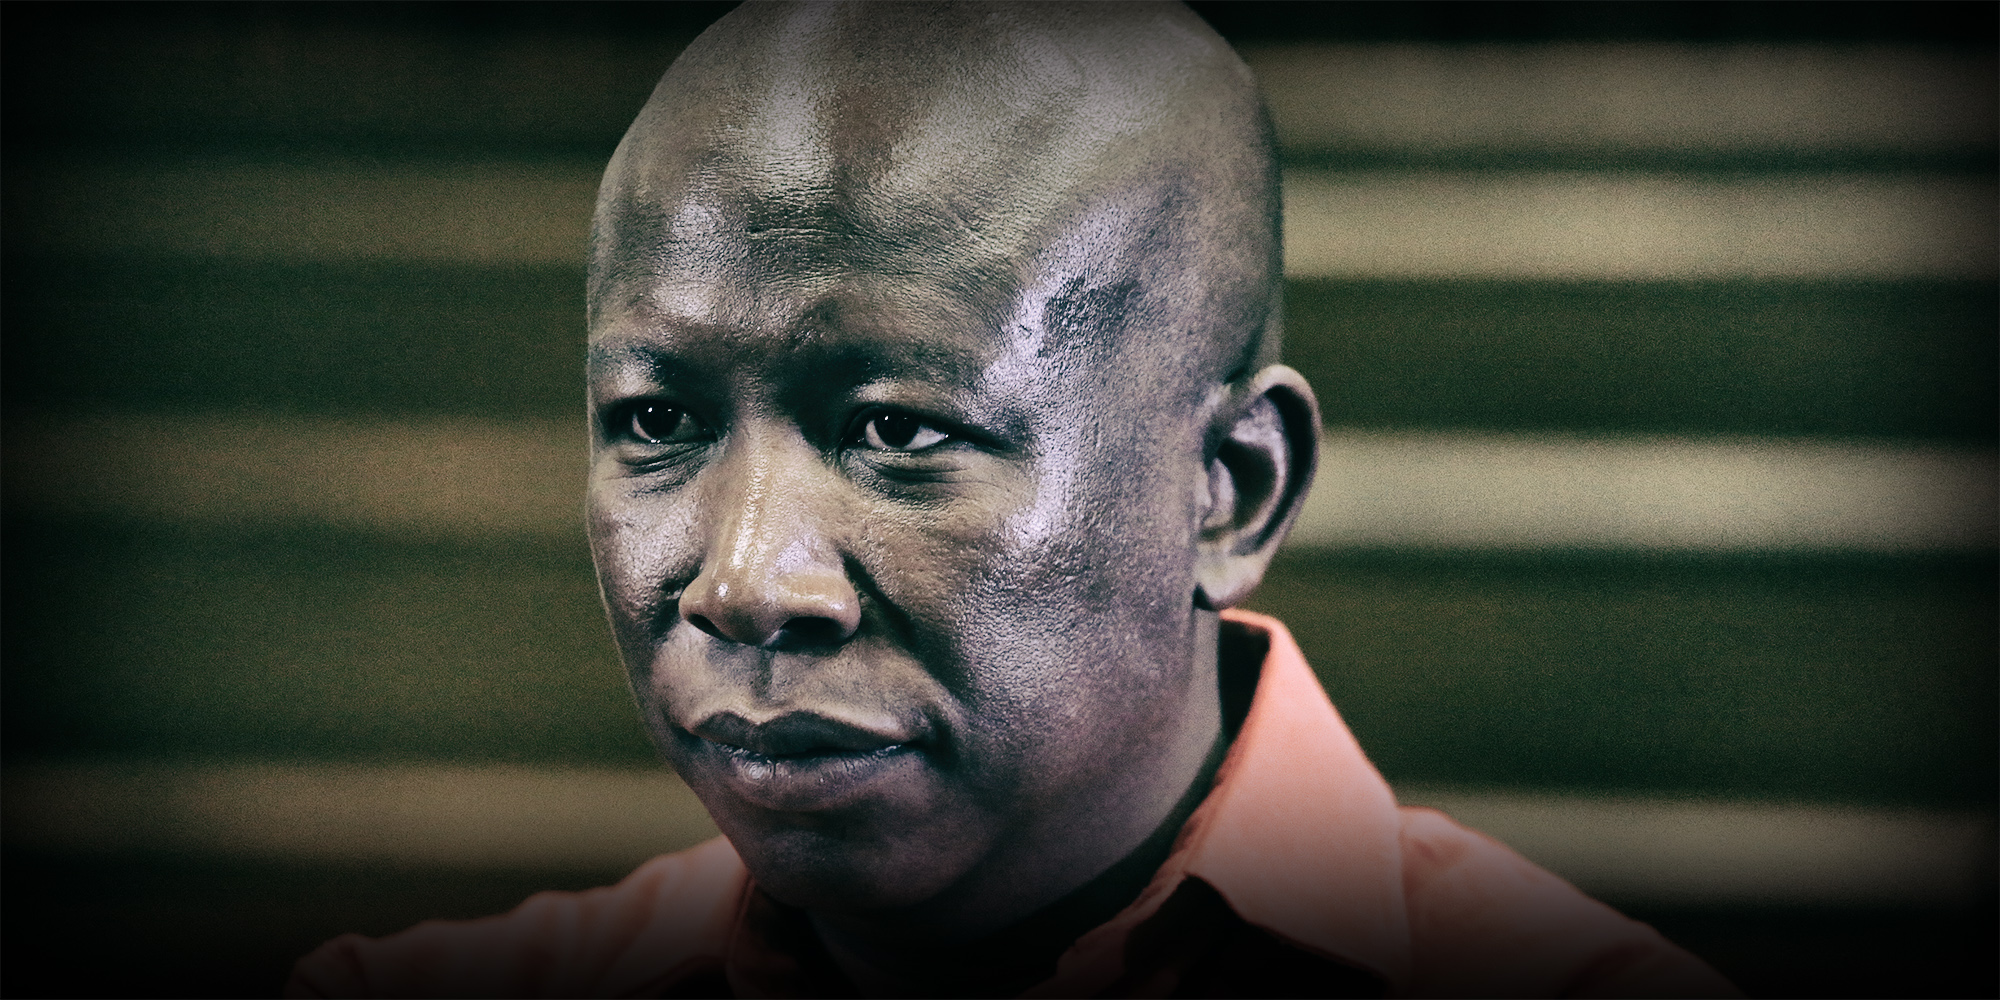 ANALYSIS: Julius Malema and the looted VBS funds: The devil's in the detail